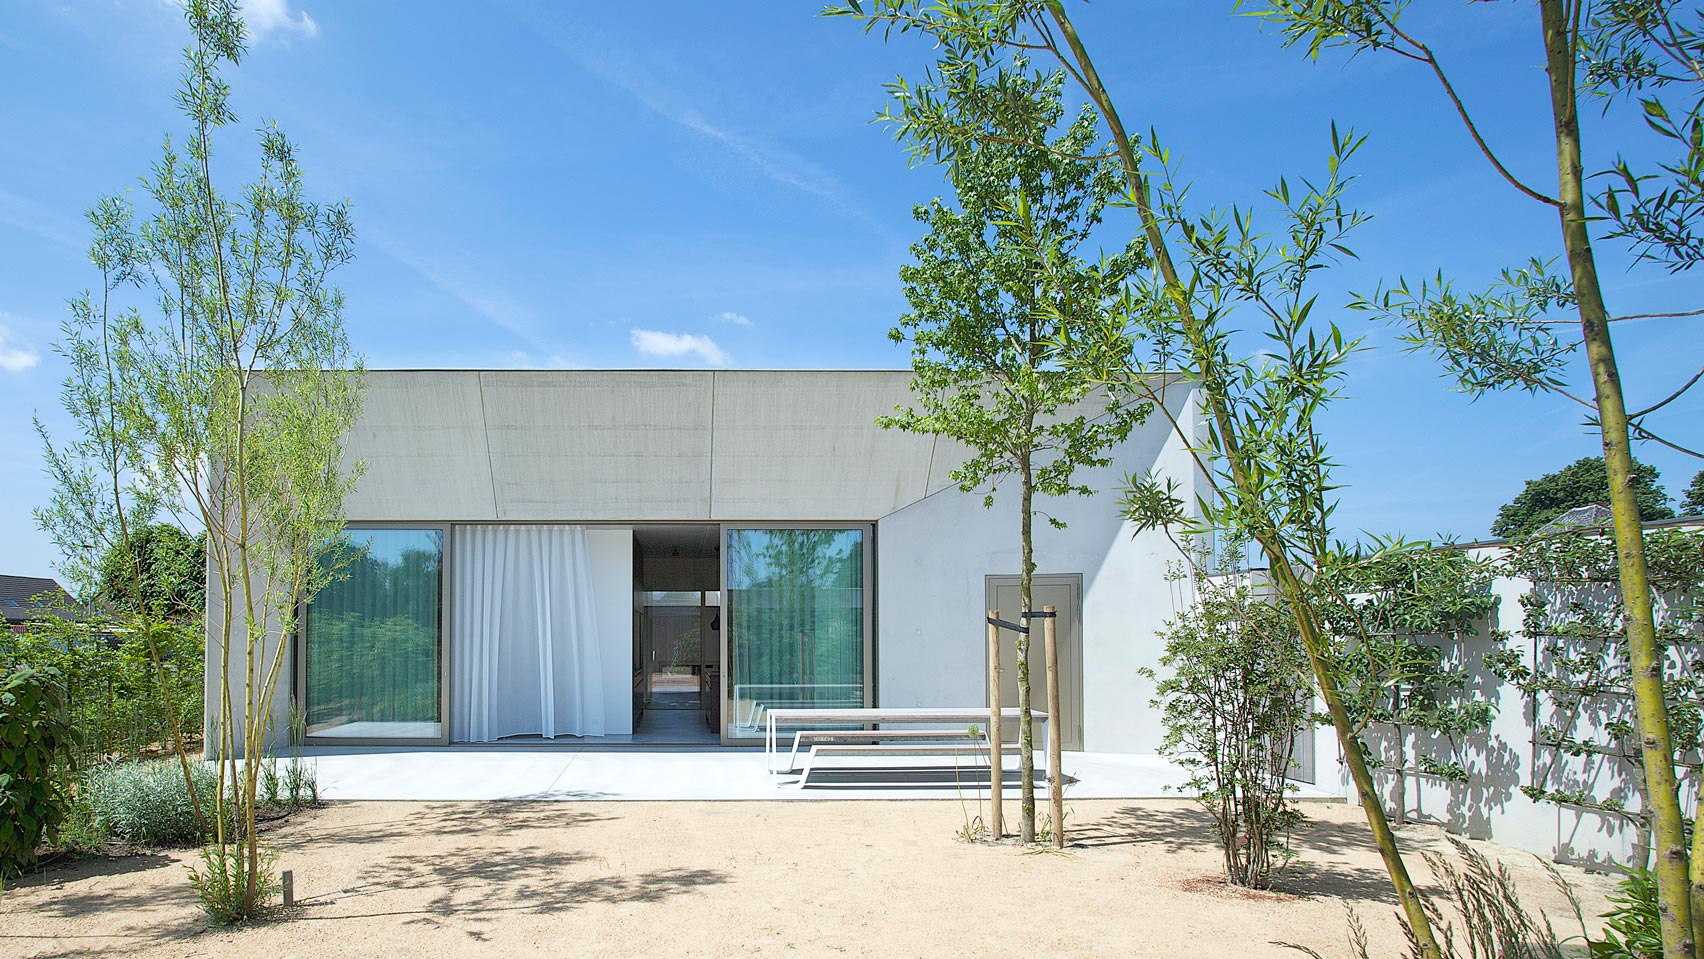 Brutalist Inspired Residence By Clauwers U0026 Simon Is Arranged Around A  Central Courtyard